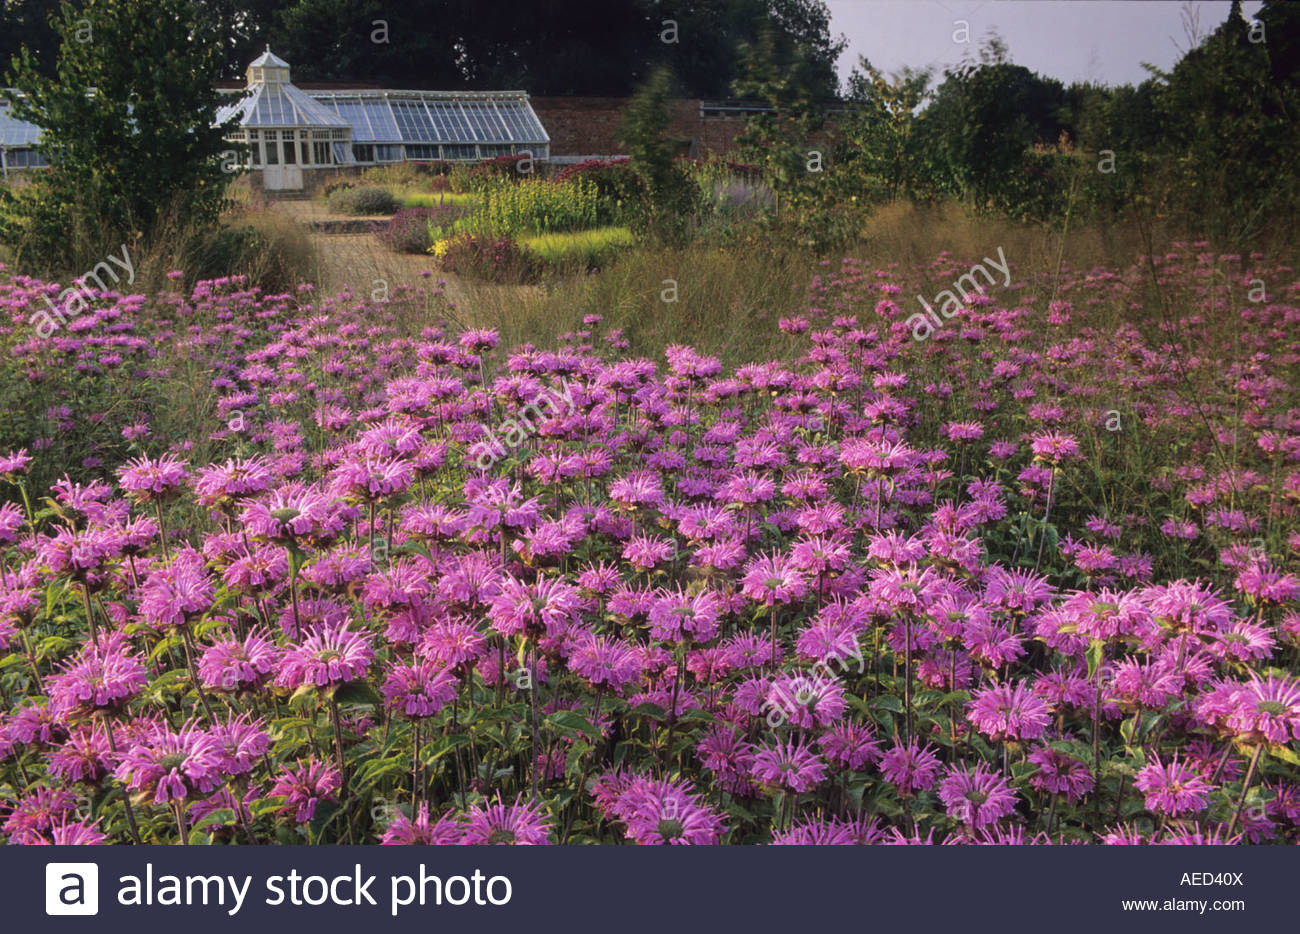 Scampston hall yorkshire design piet oudolf bee balm for Piet oudolf fall winter spring summer fall